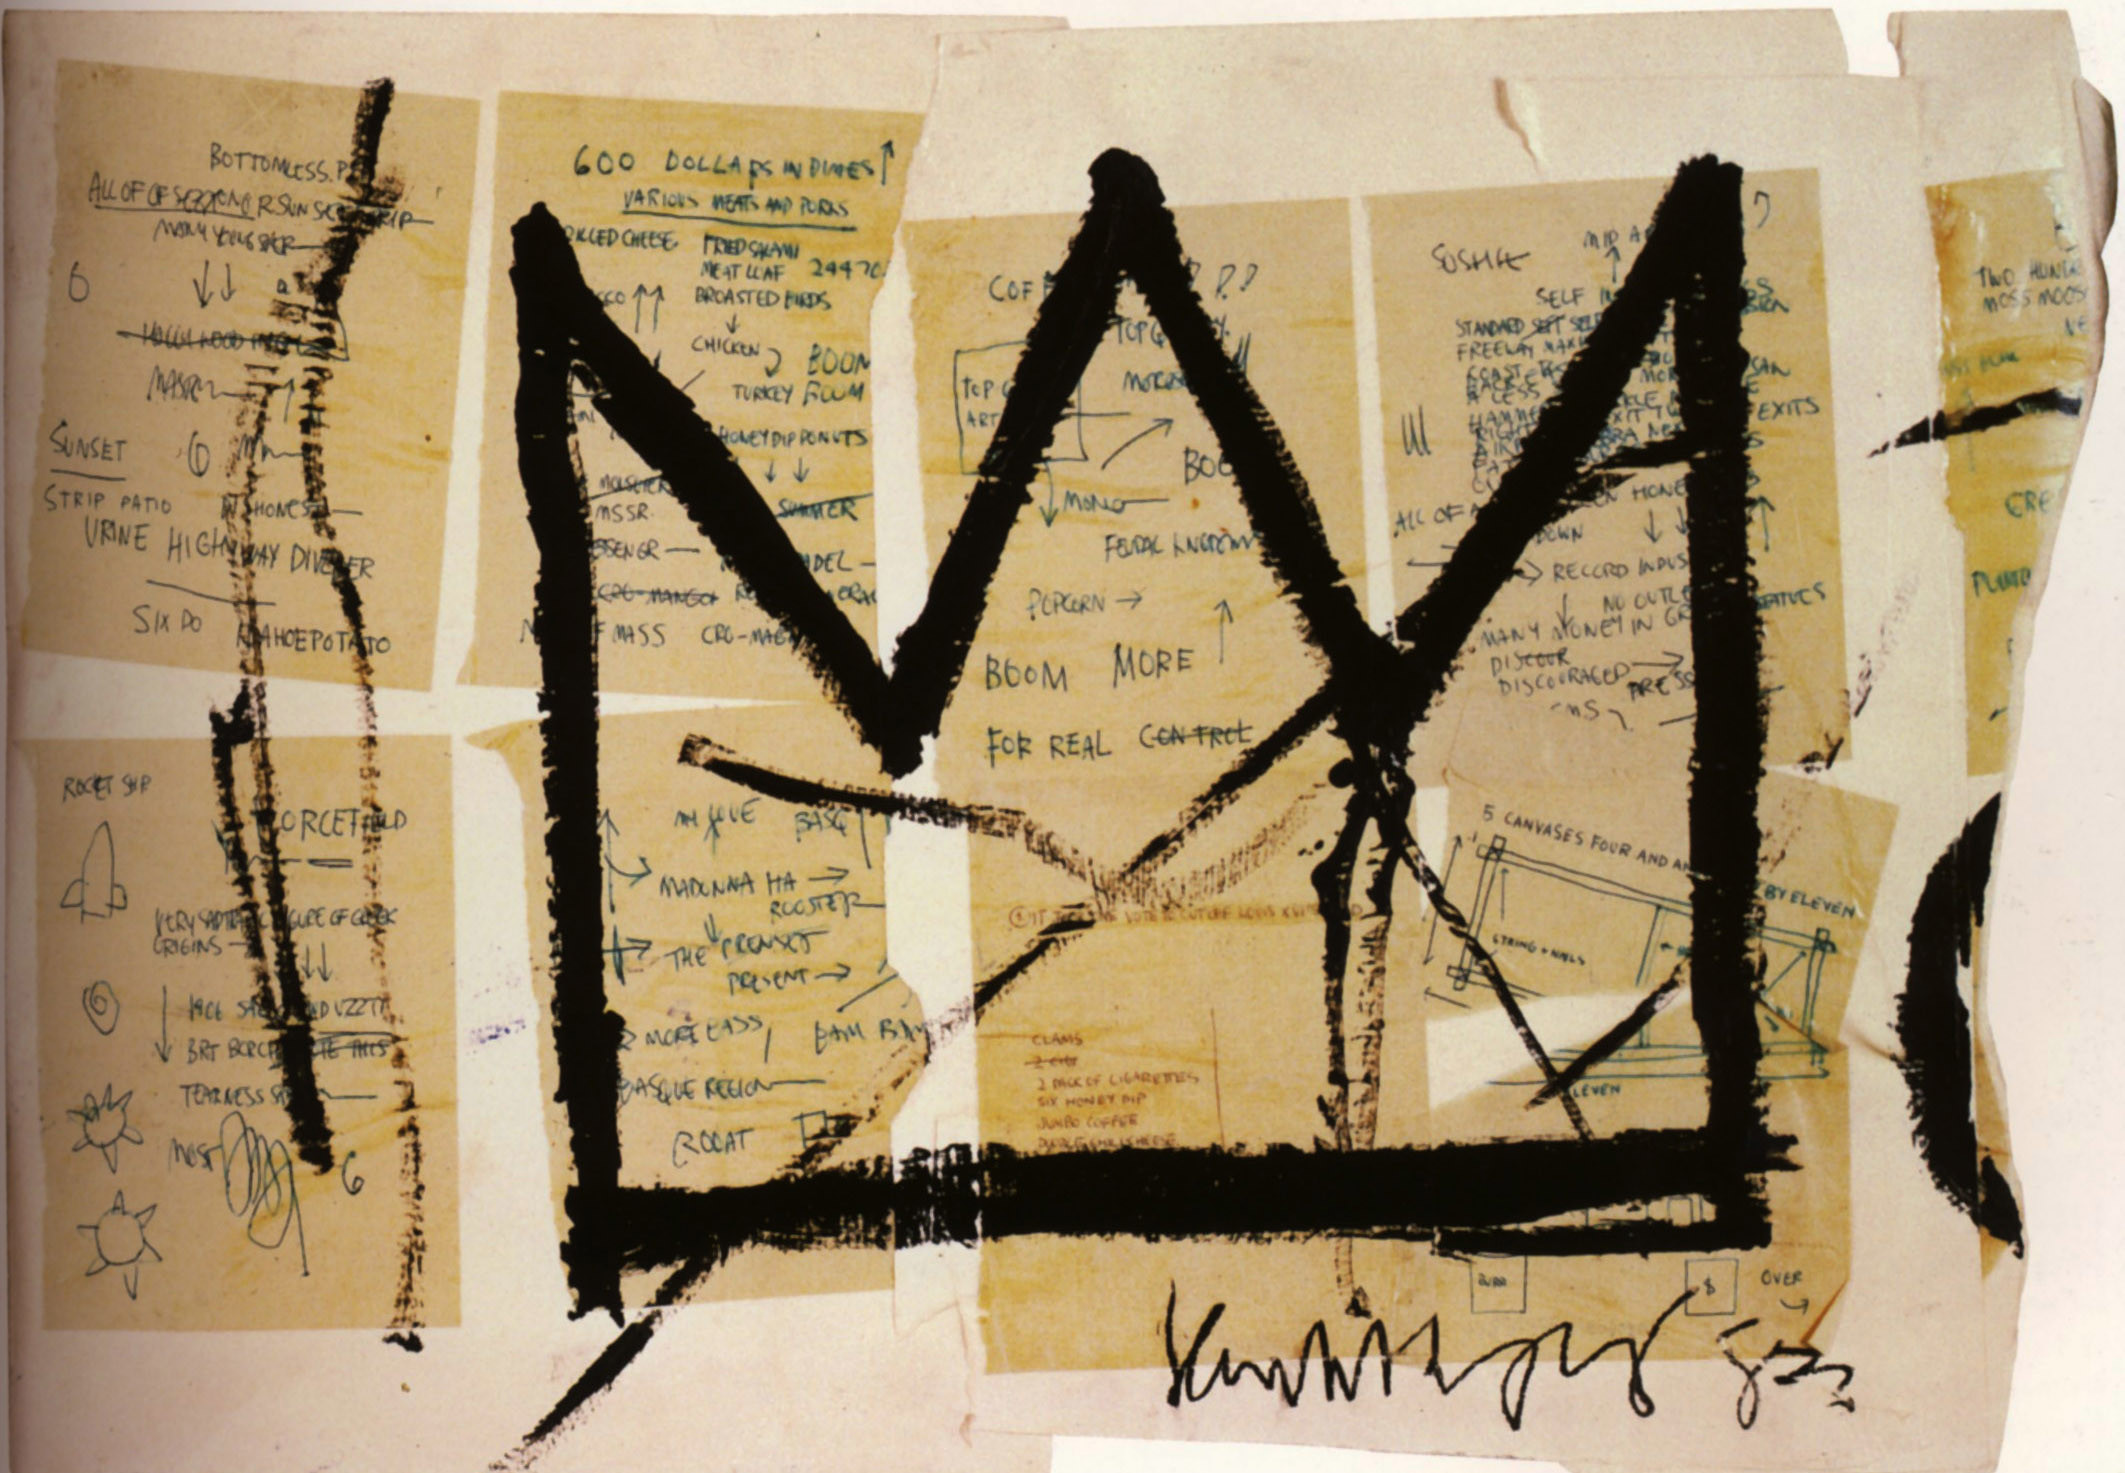 Crown, 1983 – Jean-Michel Basquiat